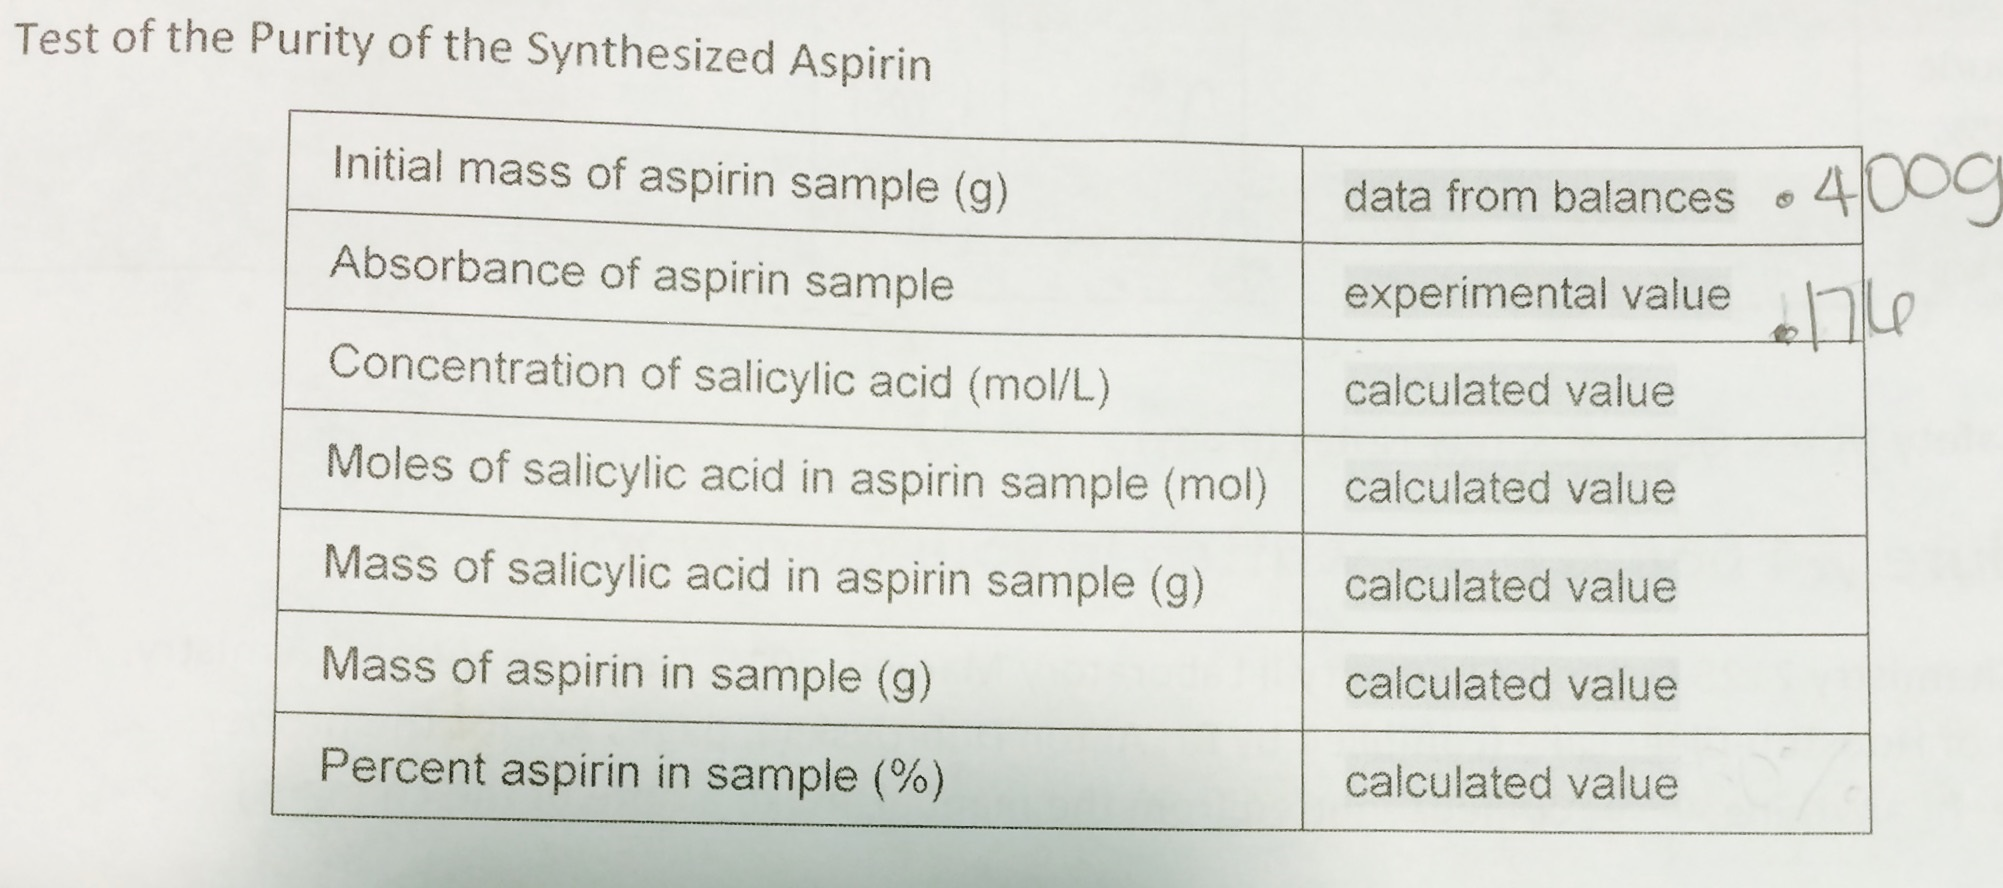 """purity of aspirin by spectrophotometry essay Tom hodgkinson's essay """"friends like these """" is flawed aspirin and measure the synthesized aspirin's purity spectrophotometry of."""